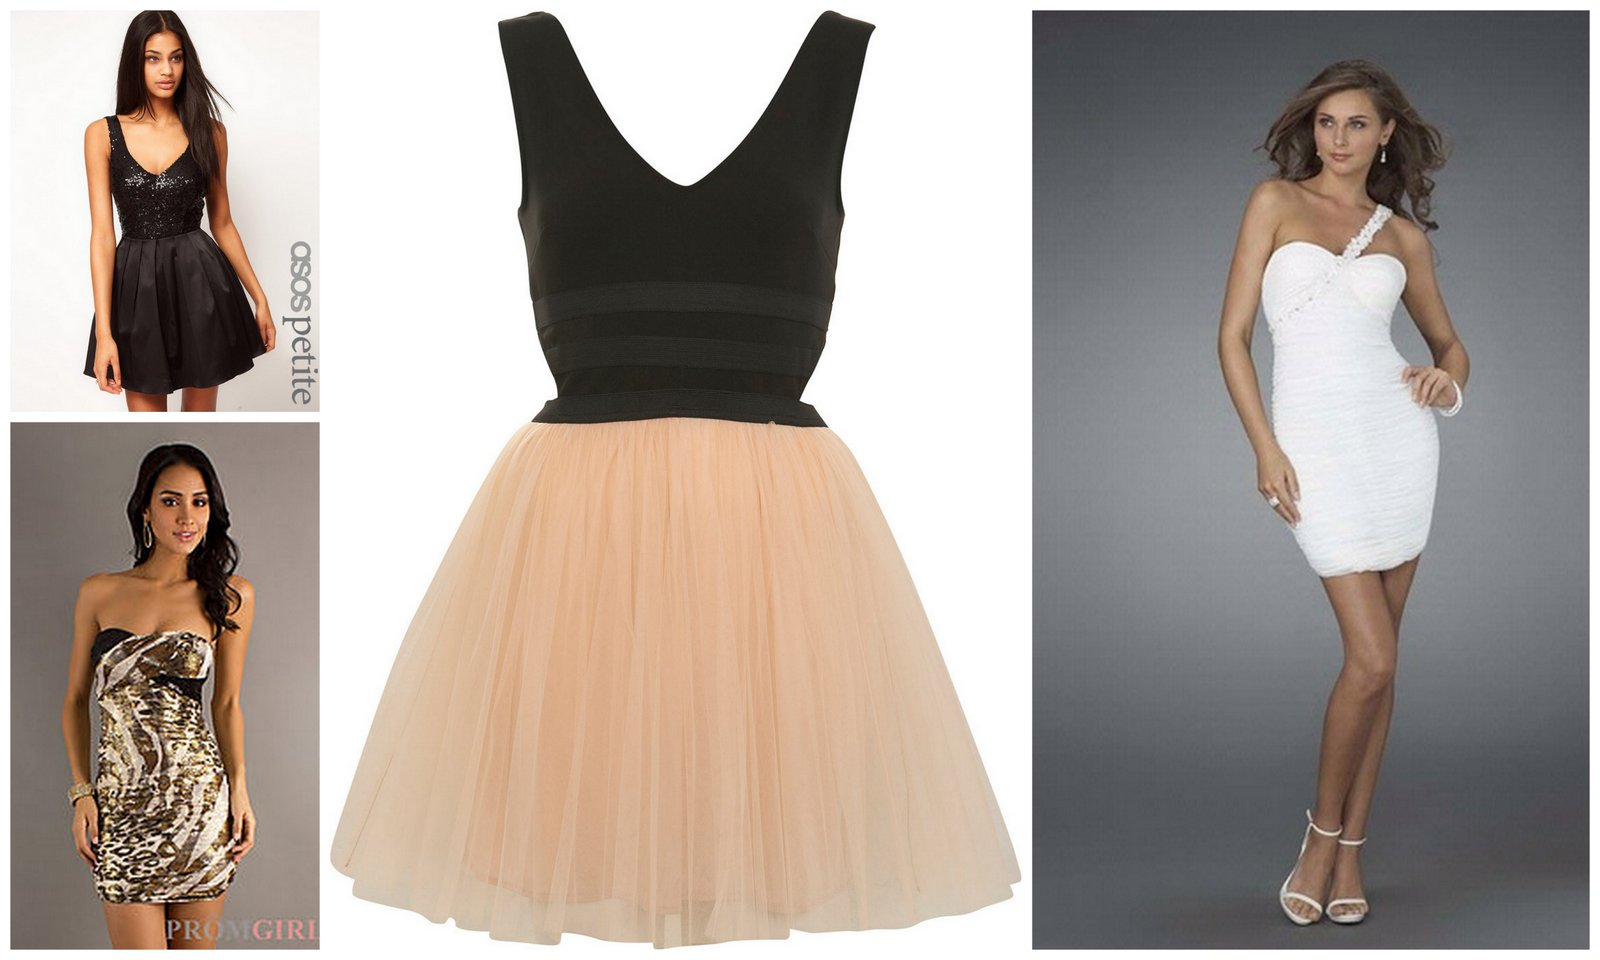 706d09bf37640 stay with short dresses ✧ sweet, feminine ✧ avoid a lot of fabric on the  bottom